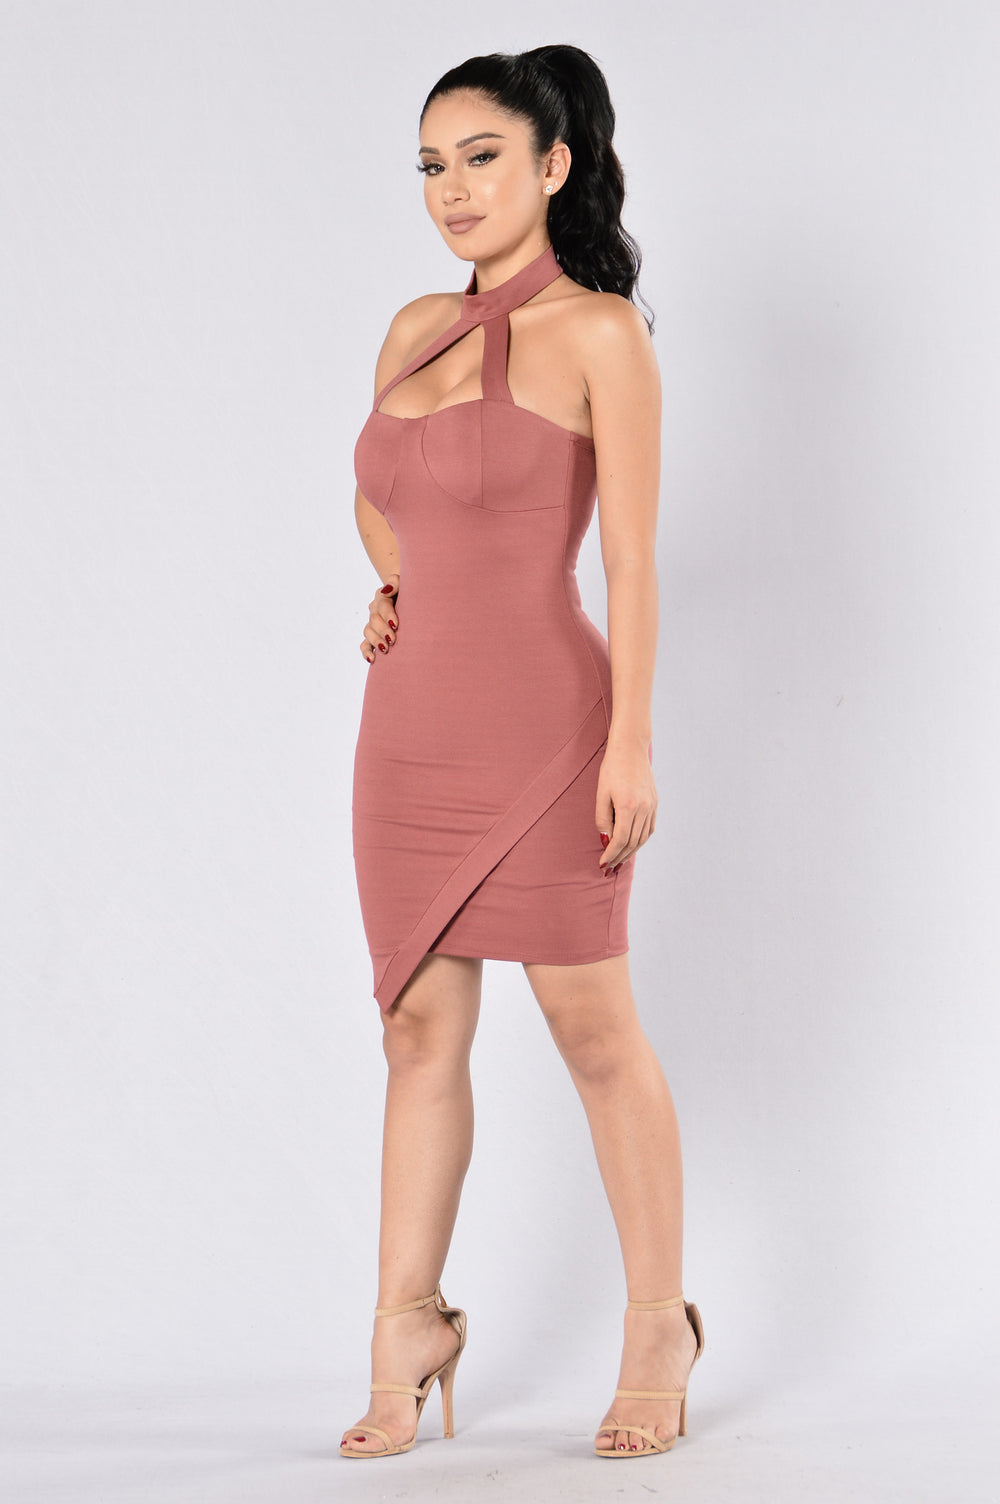 Call Me Beep Me Dress - Marsala